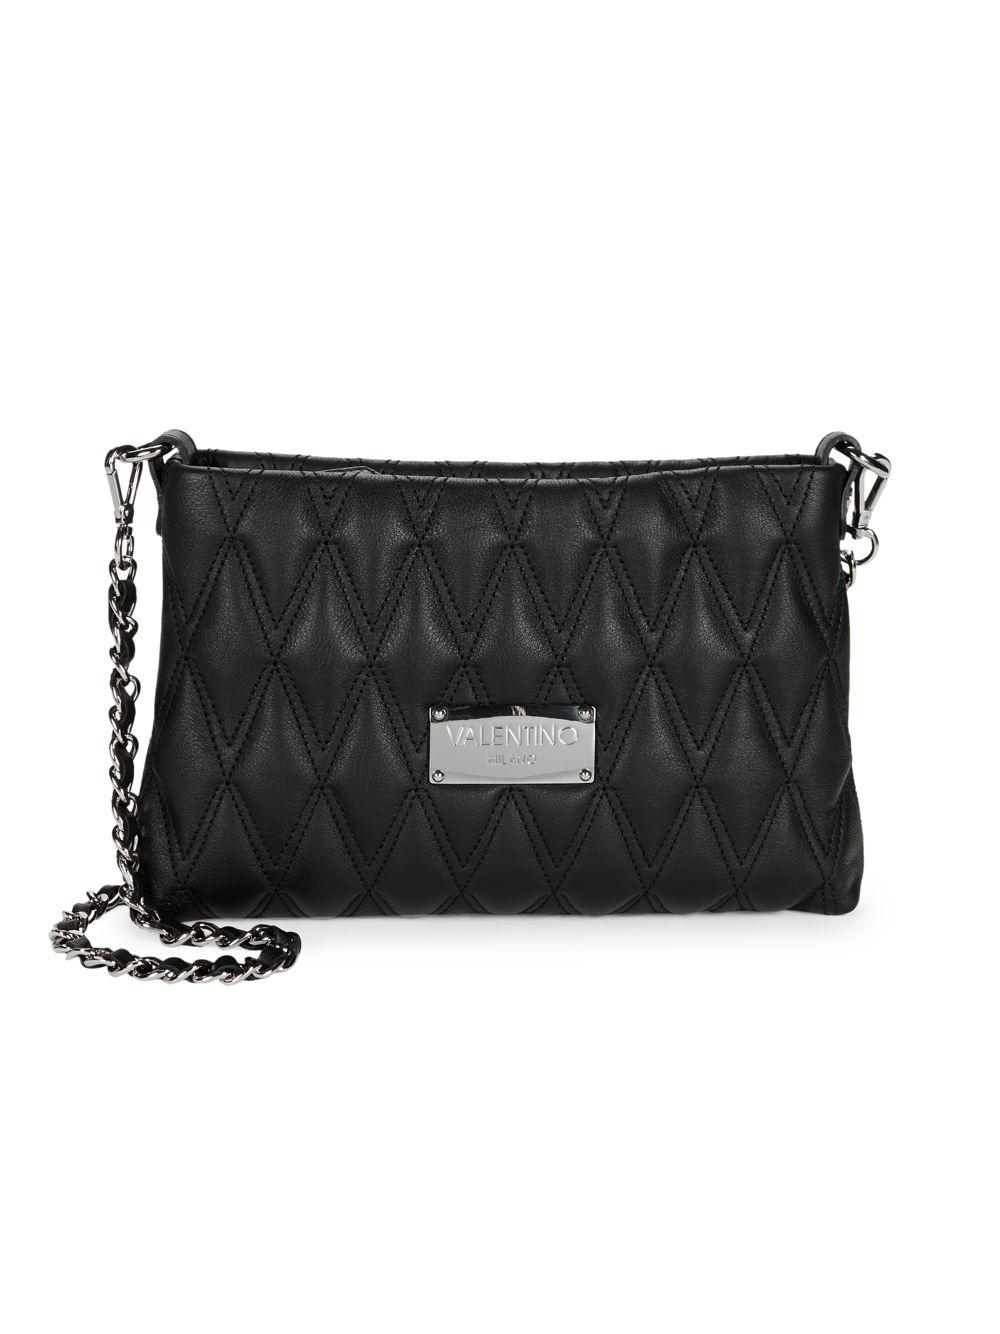 8c4e7a50ad7d Valentino By Mario Valentino. Women s Black Vaniled Diamond Quilted  Crossbody Bag